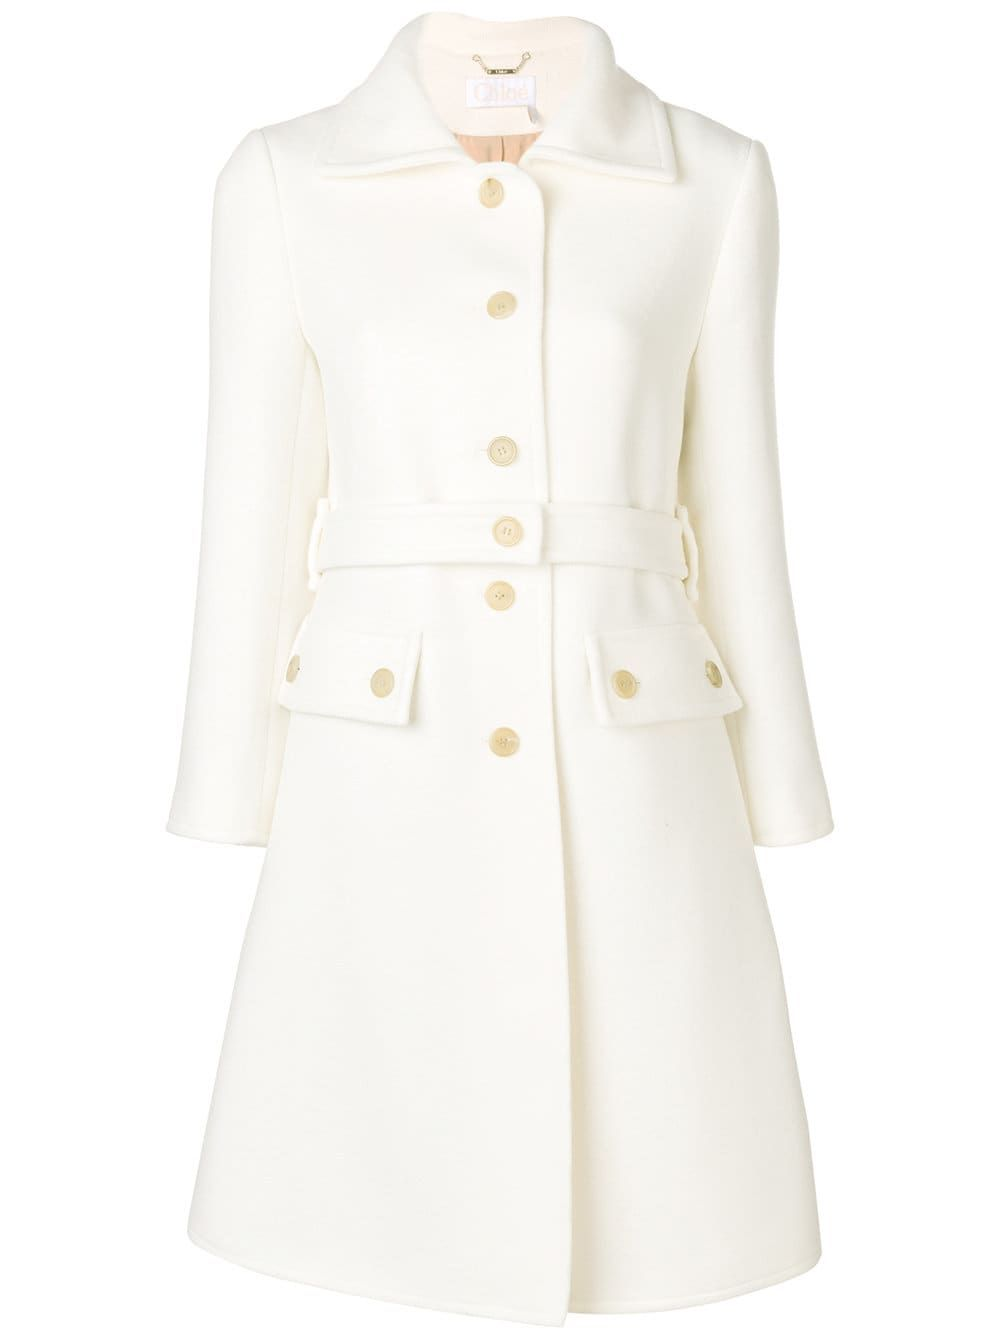 85a4479504 Chloé Single Breasted Belted Coat in 2019 | COATS | Gucci coat, Coat ...